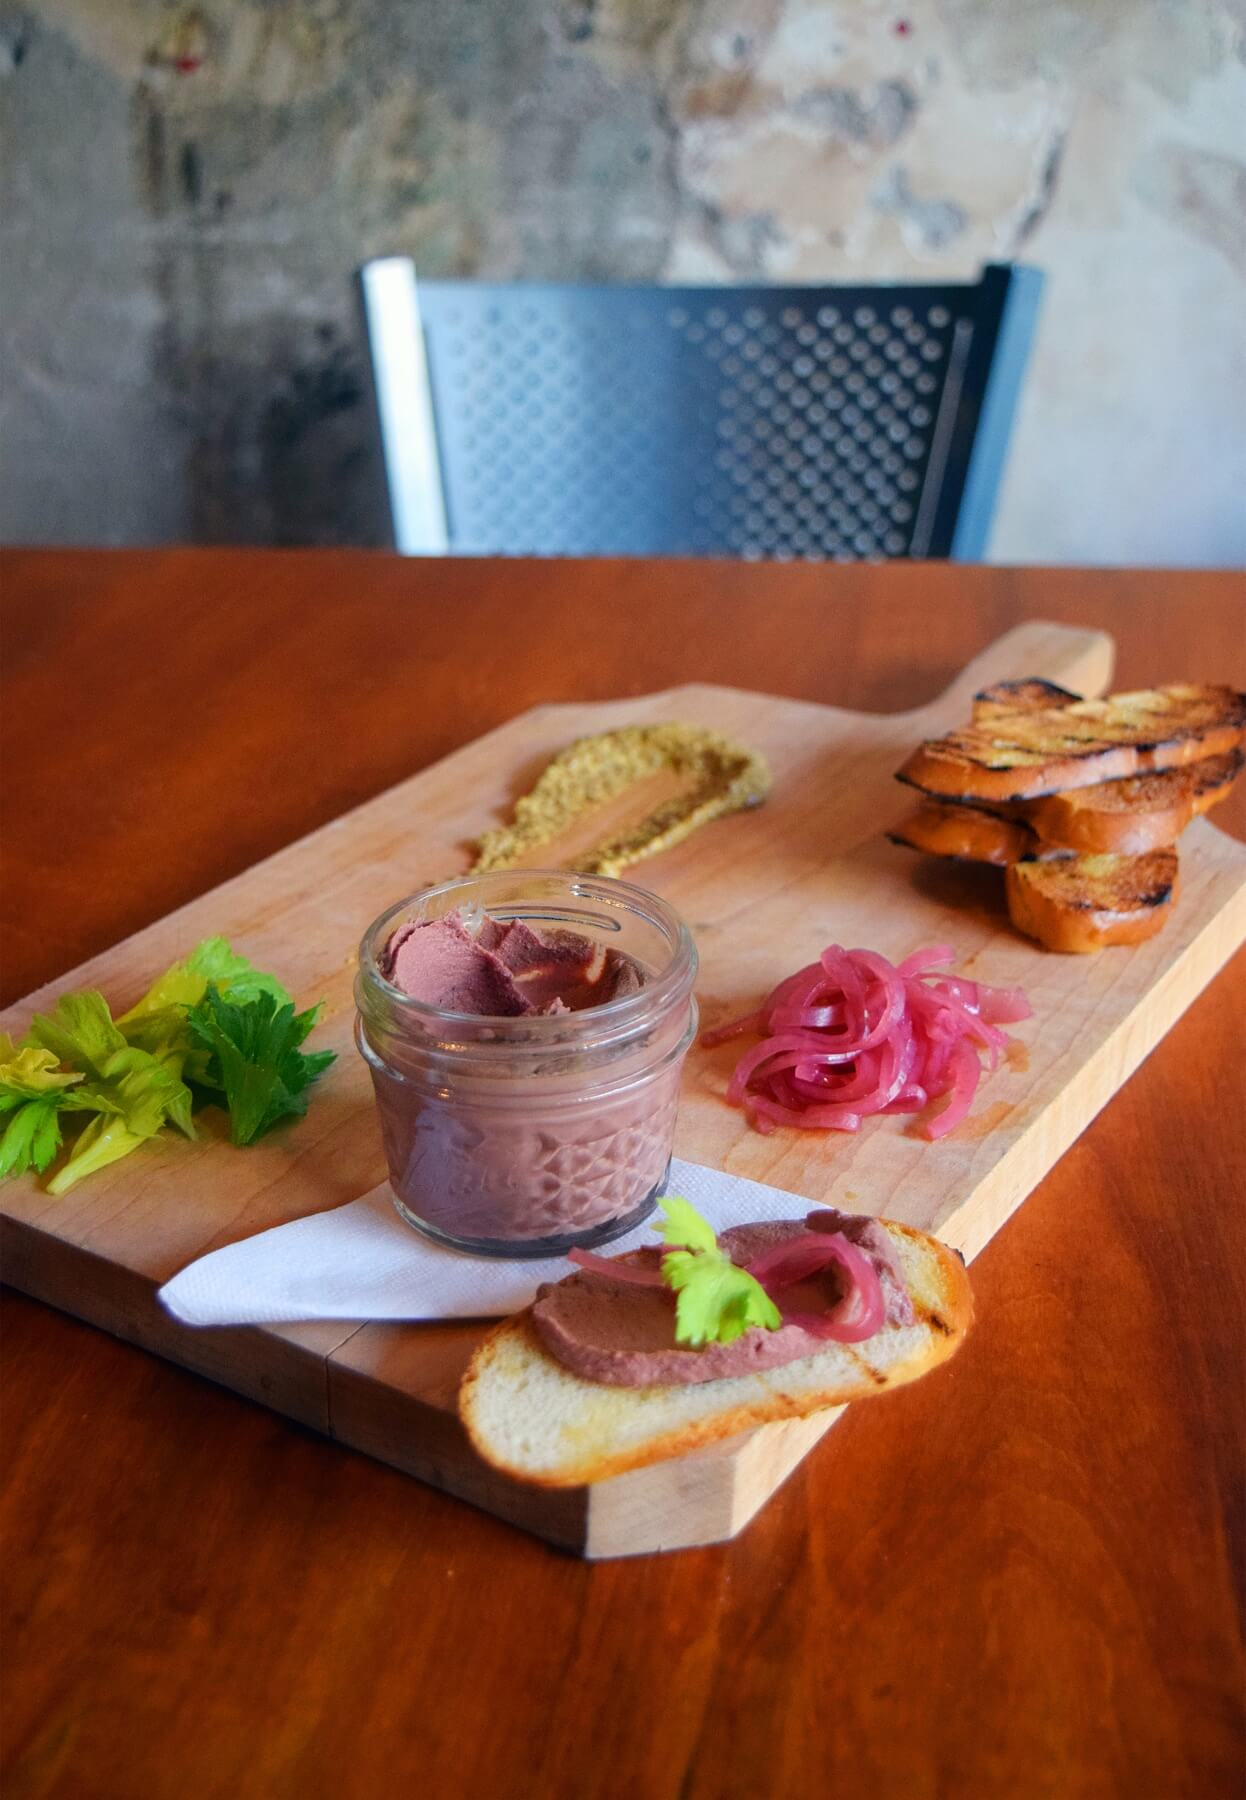 Build your own crostini! House-made chicken liver mousse is served with grainy mustard, pickled red onion, celery leaves and grilled bread.